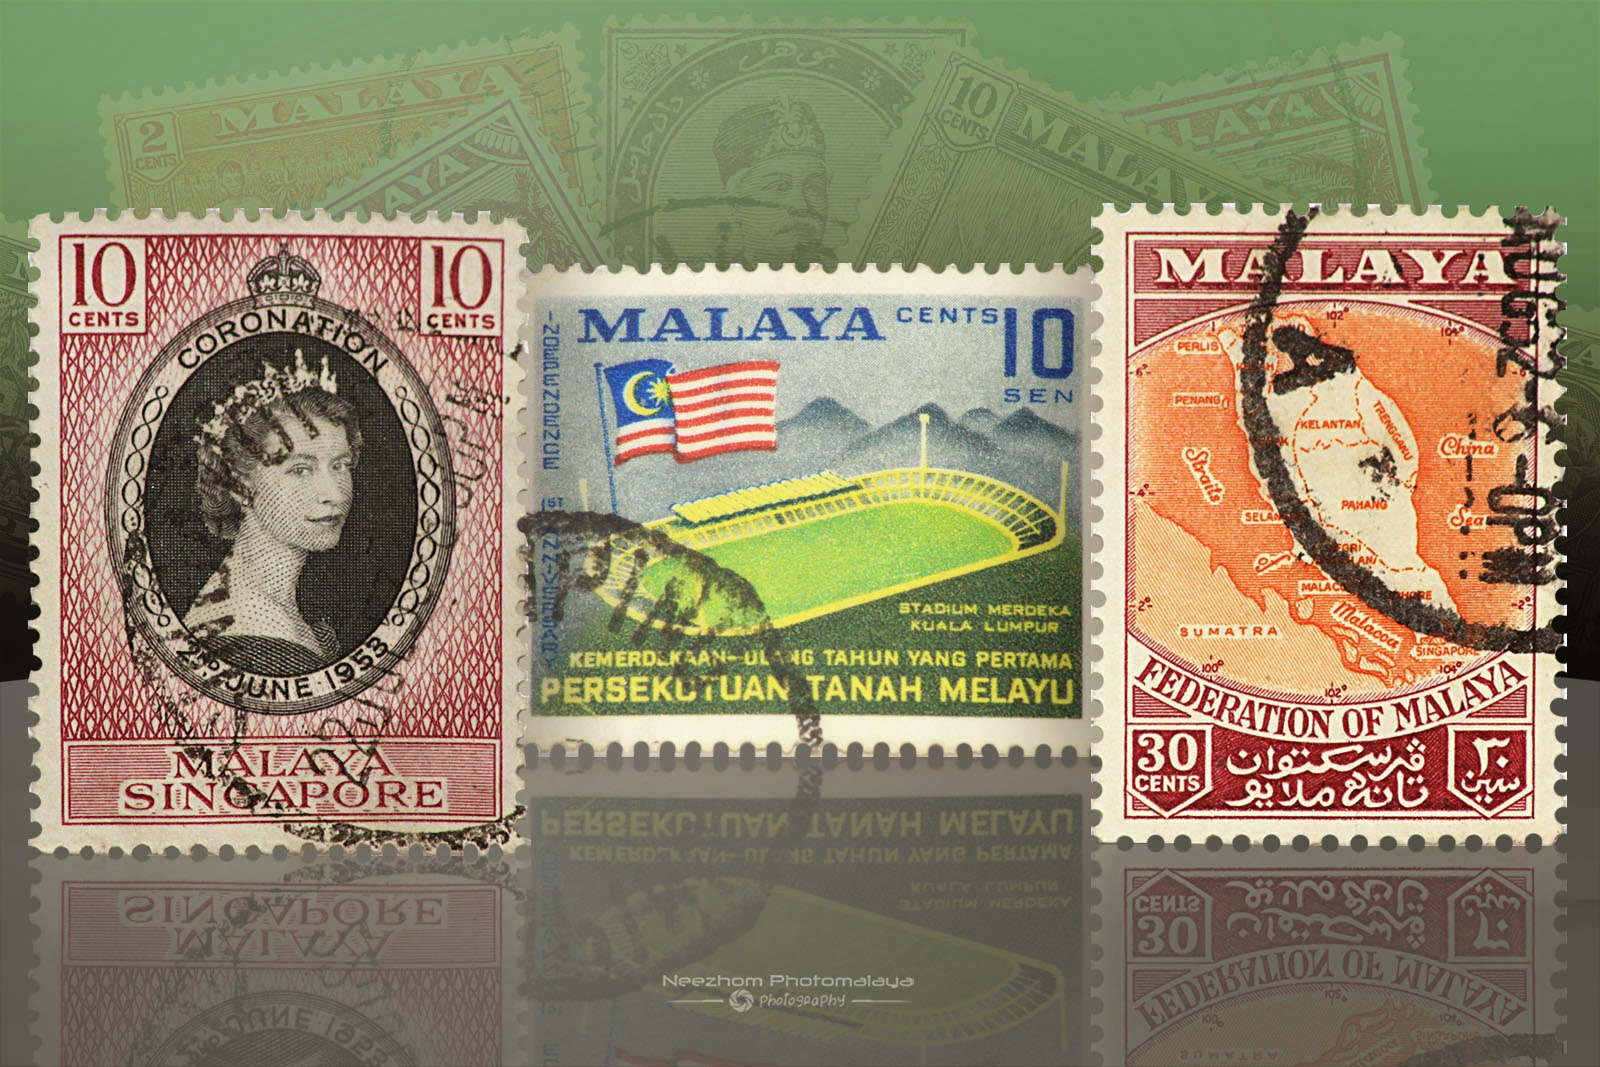 10 Cents Malaya Singapore Queen Elizabeth Coronation 1953, 10 Sen Ulang Tahun Pertama Merdeka 1958, 30 Cents Federation Of Malaya